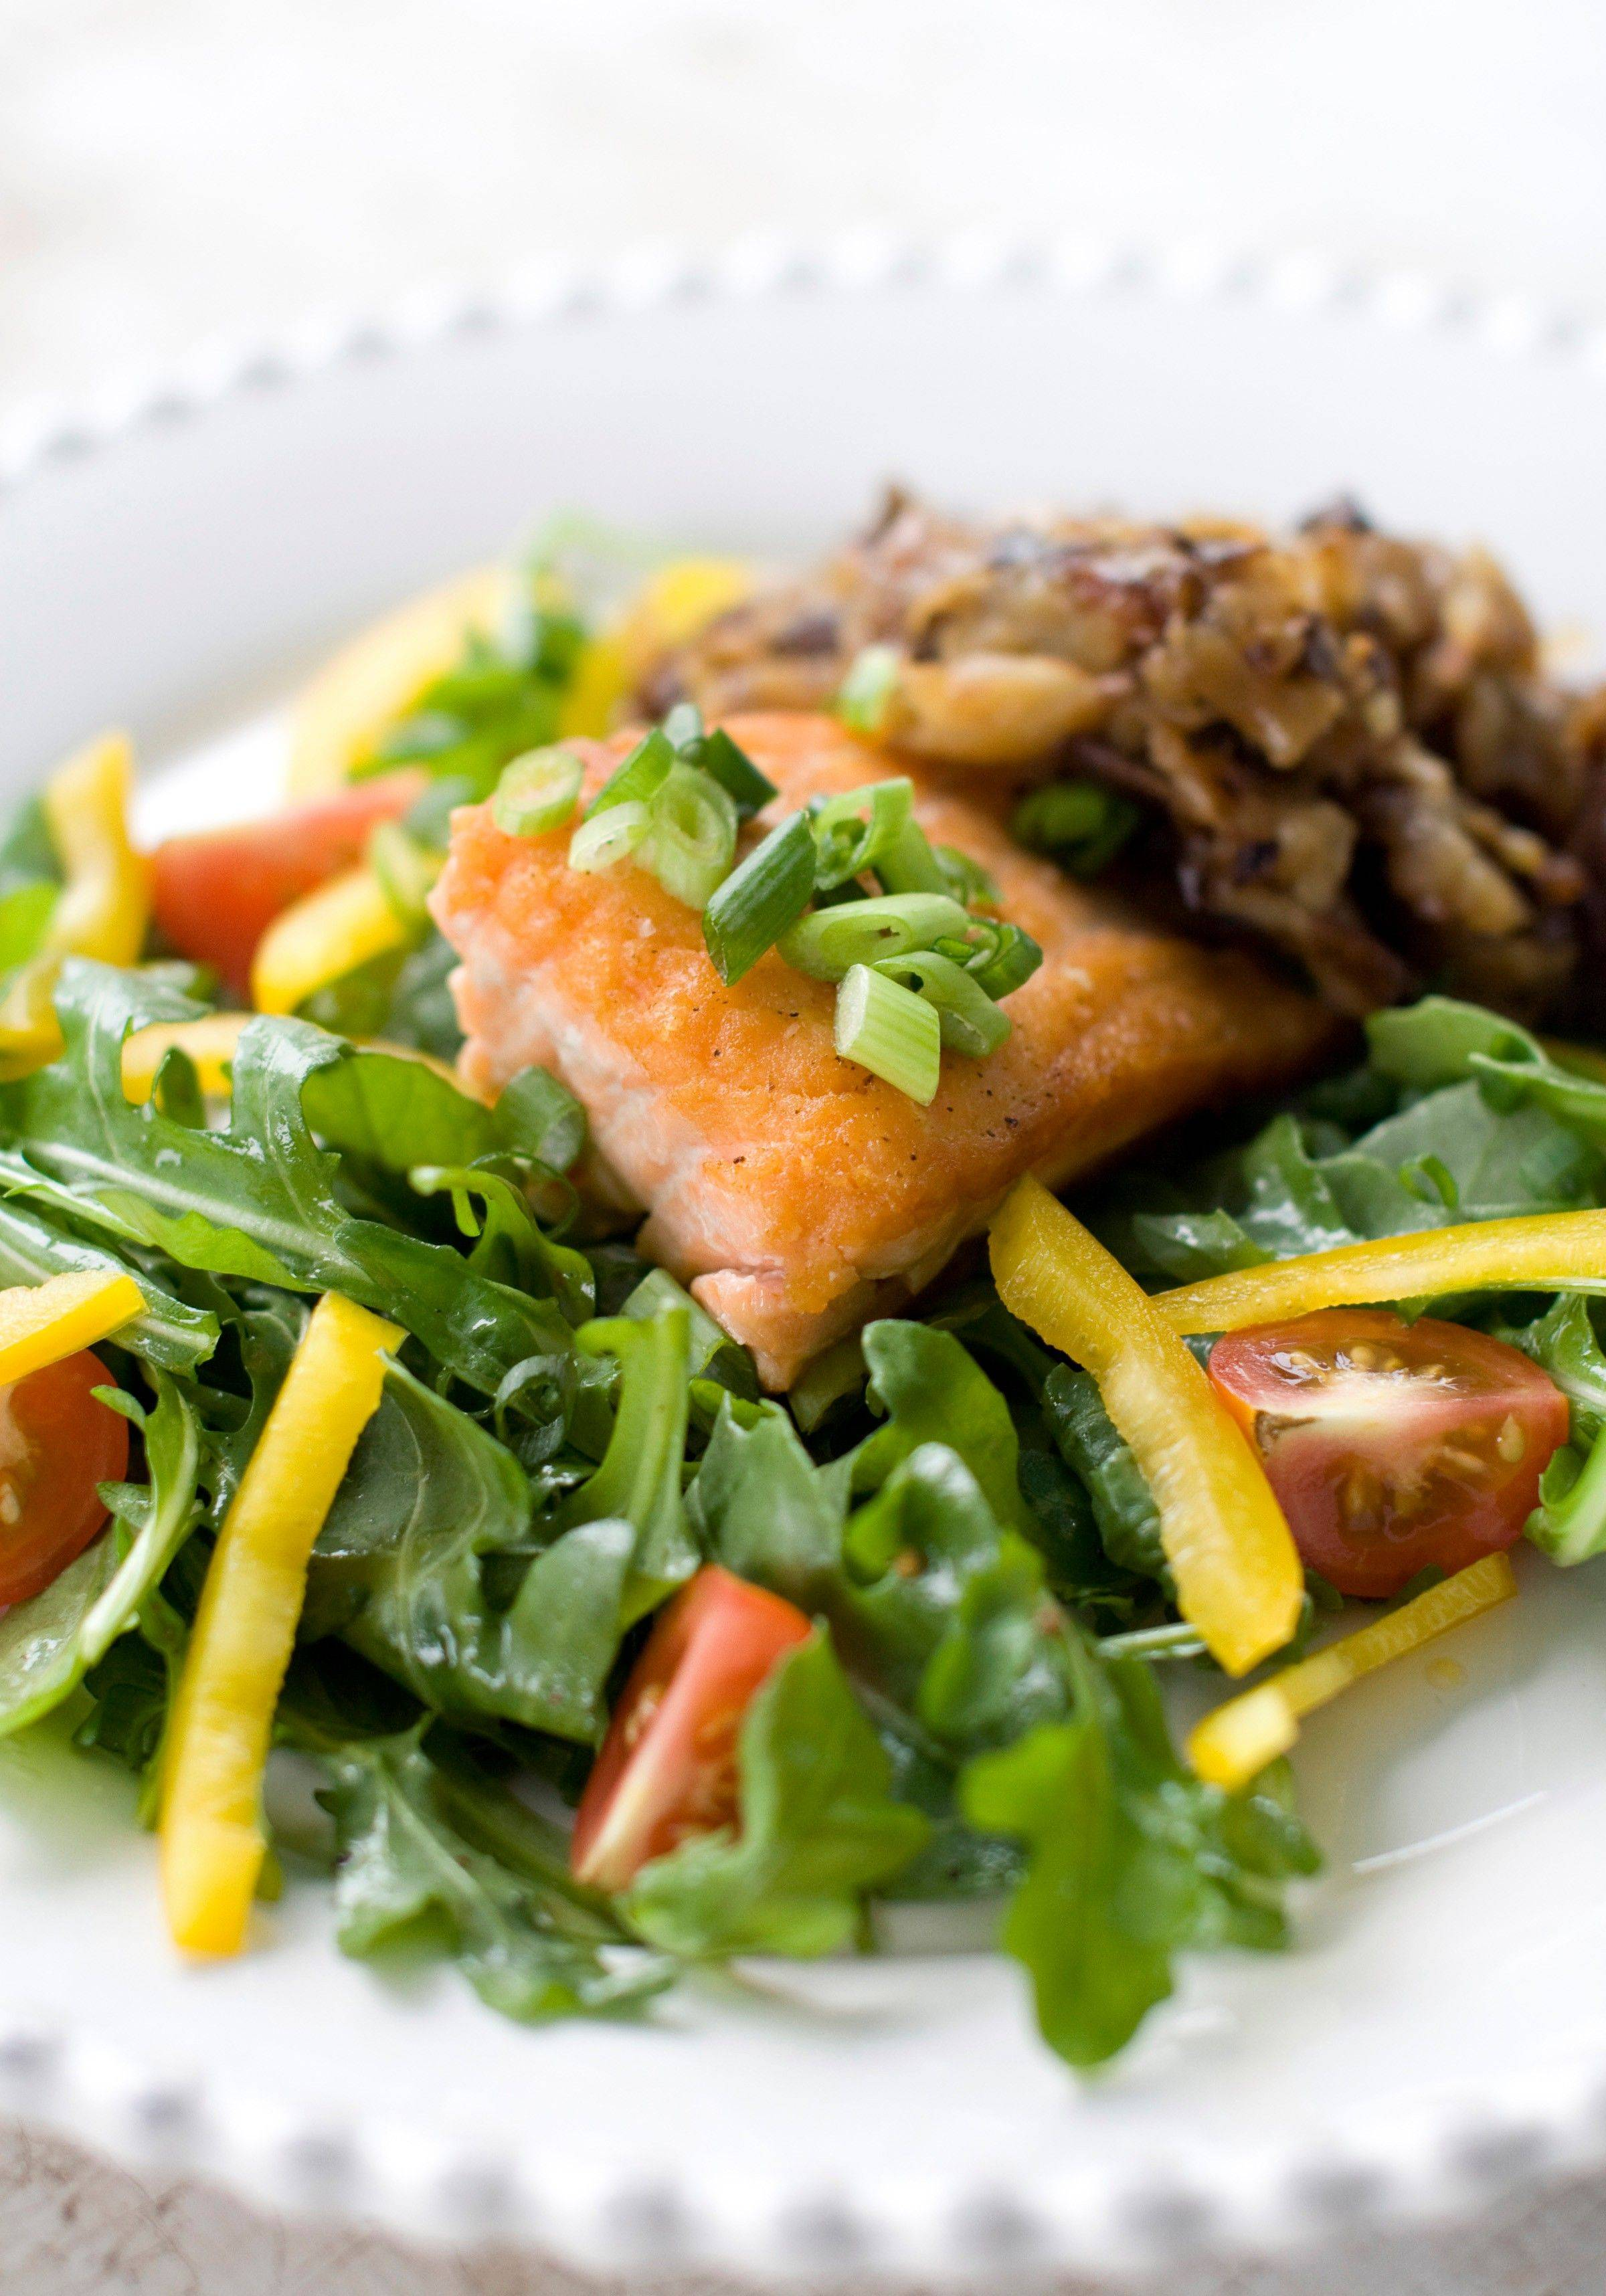 The earthy flavor of shiitake mushrooms mixed with shredded potatoes complements the rich salmon in this recipe.